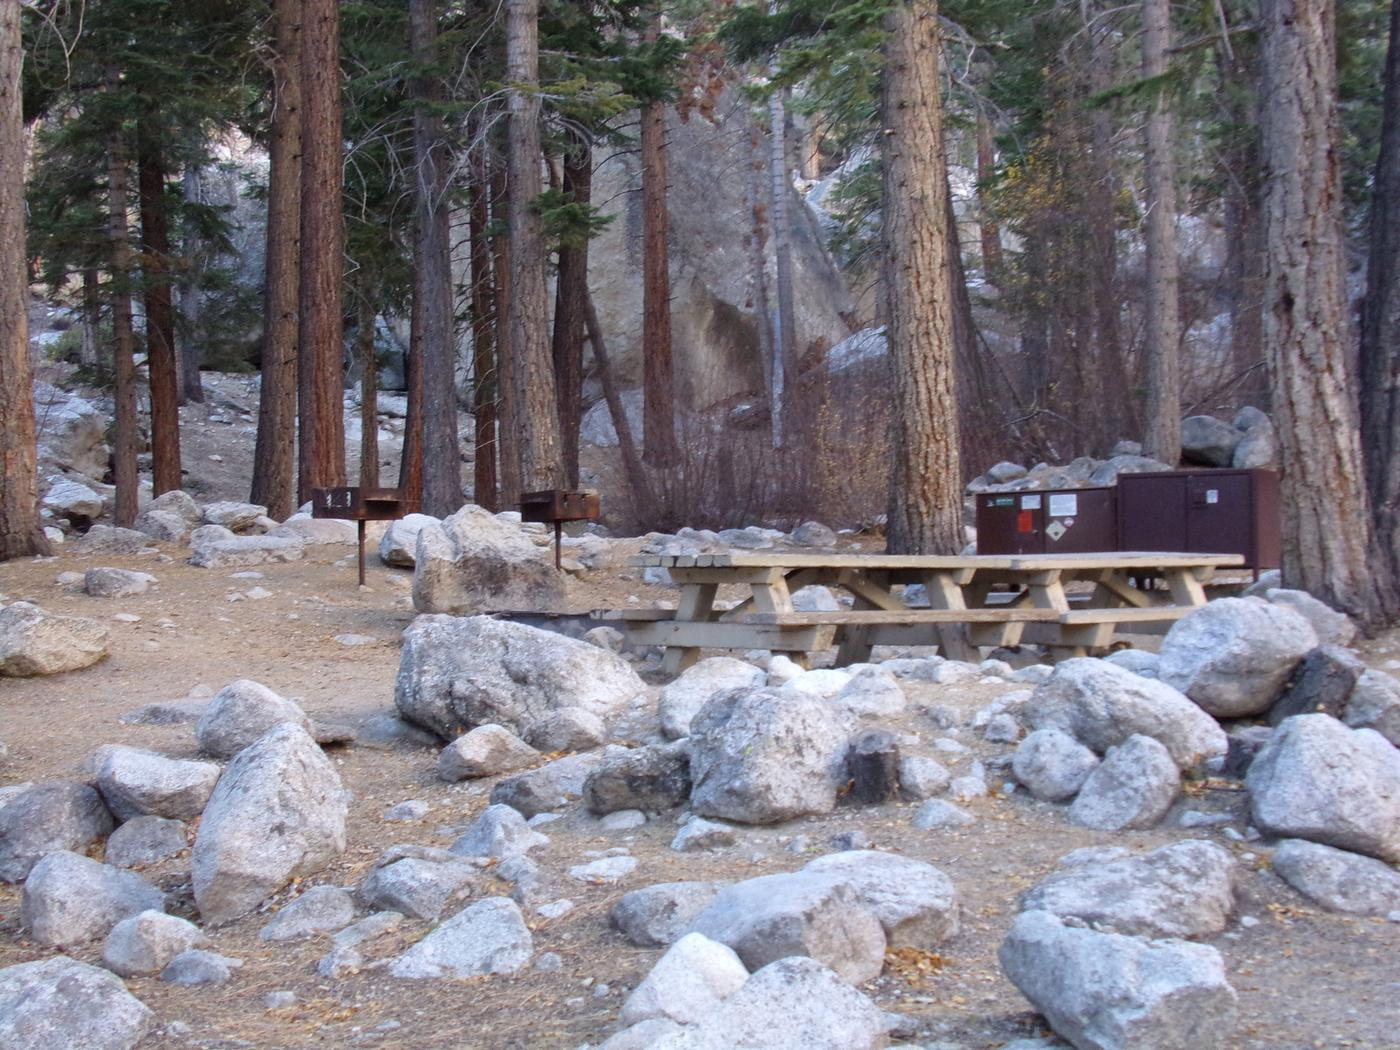 Mt. Whitney Portal Campground Group Site #02 featuring mountain top camping space with multiple picnic tables and fire pits.